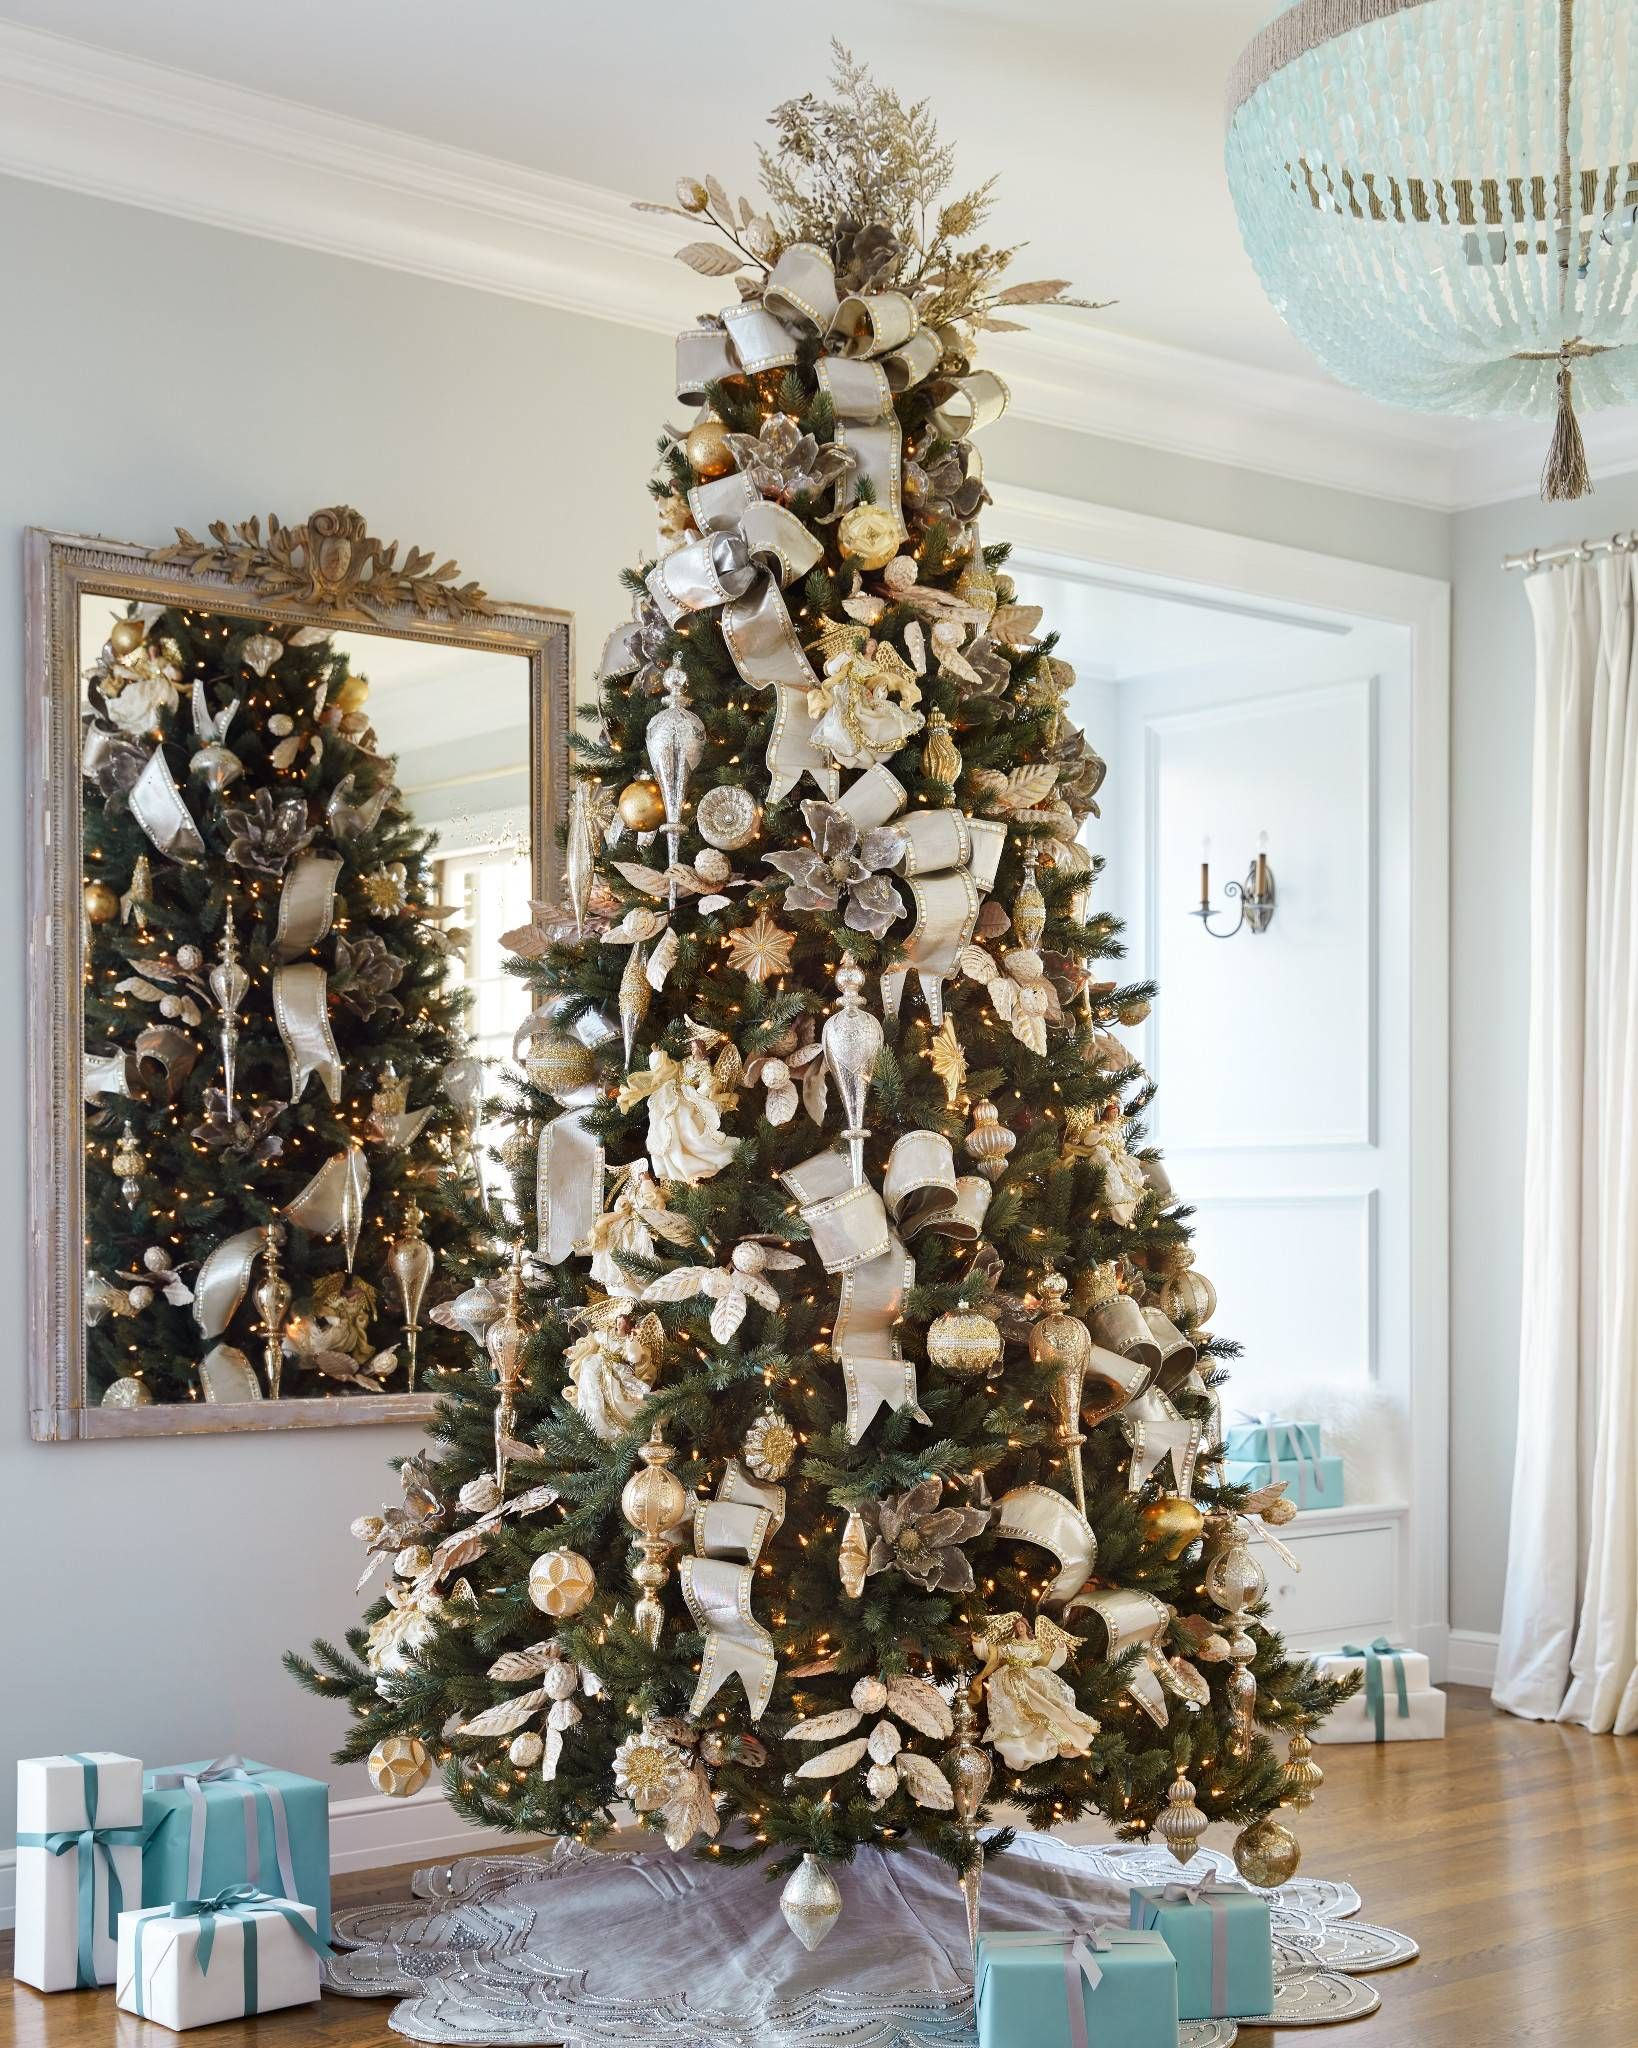 Gold decorating theme enriches any Christmas motif with elegant